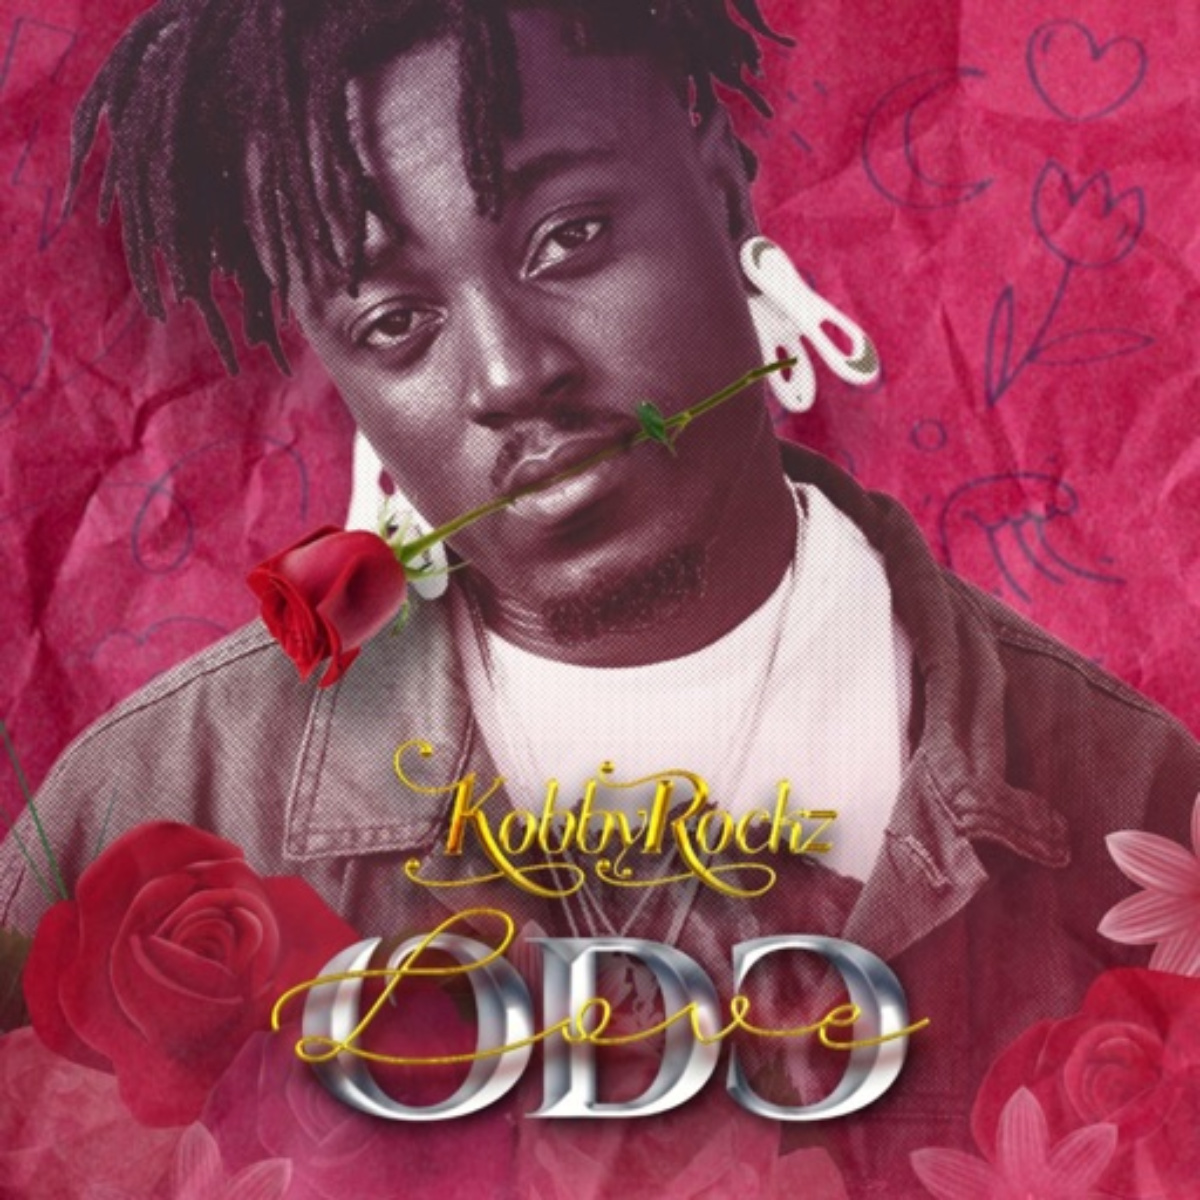 EP Review: Odɔ EP by KobbyRockz